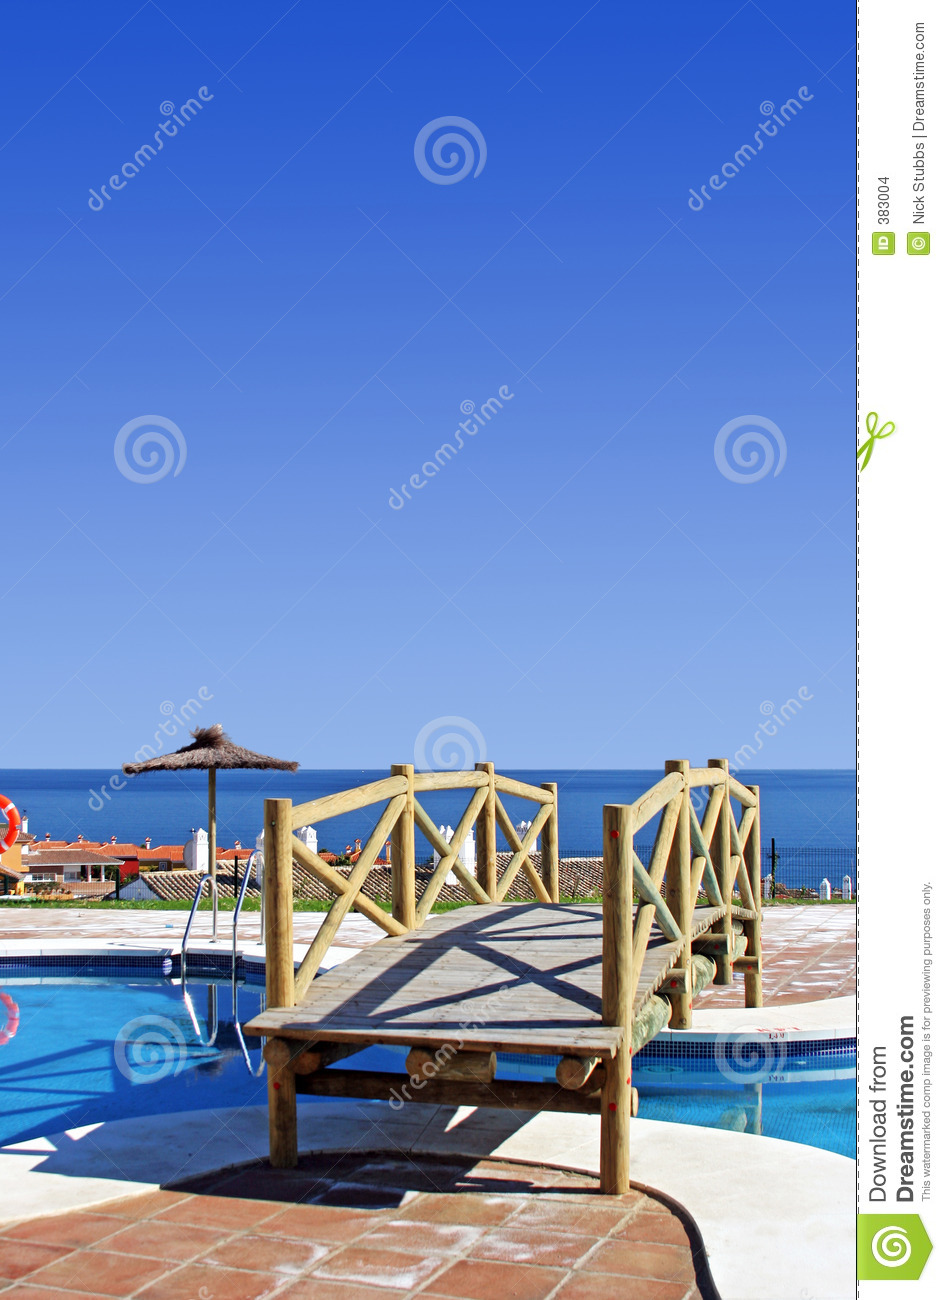 Wooden bridge over swimming pool in spanish urbanisation stock images image 383004 for How to say swimming pool in spanish